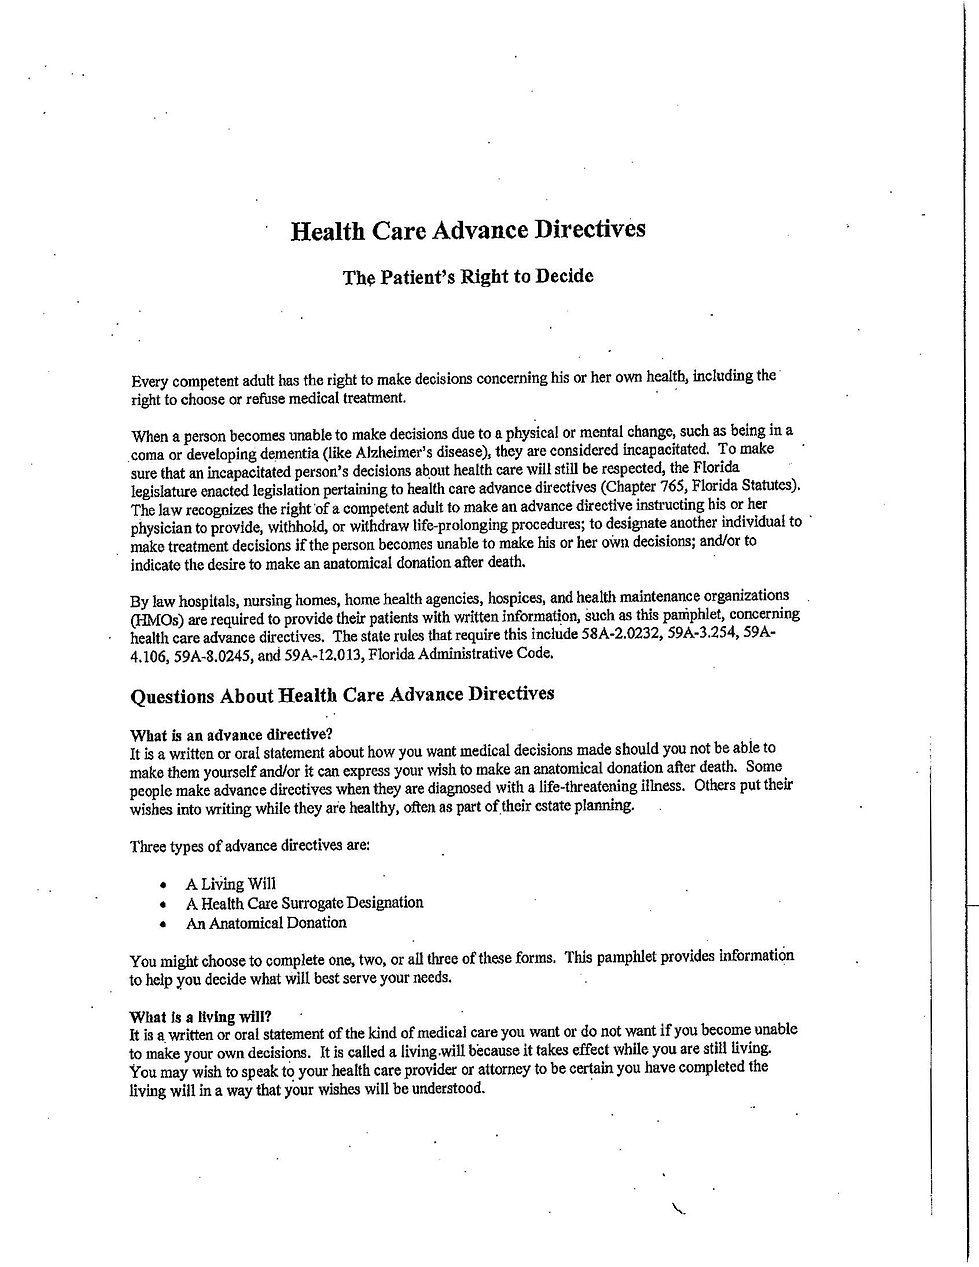 health care advance directives_Page_1.jp